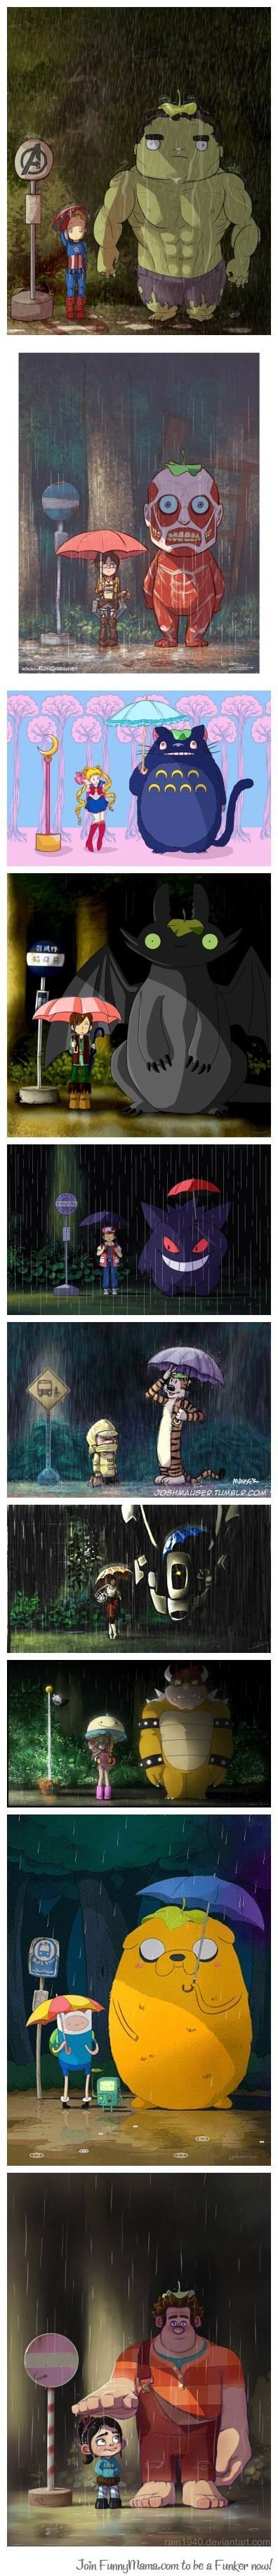 I just love Totoro all the characters are so much fun. Just the kind of imaginary friends I had when I was young.............